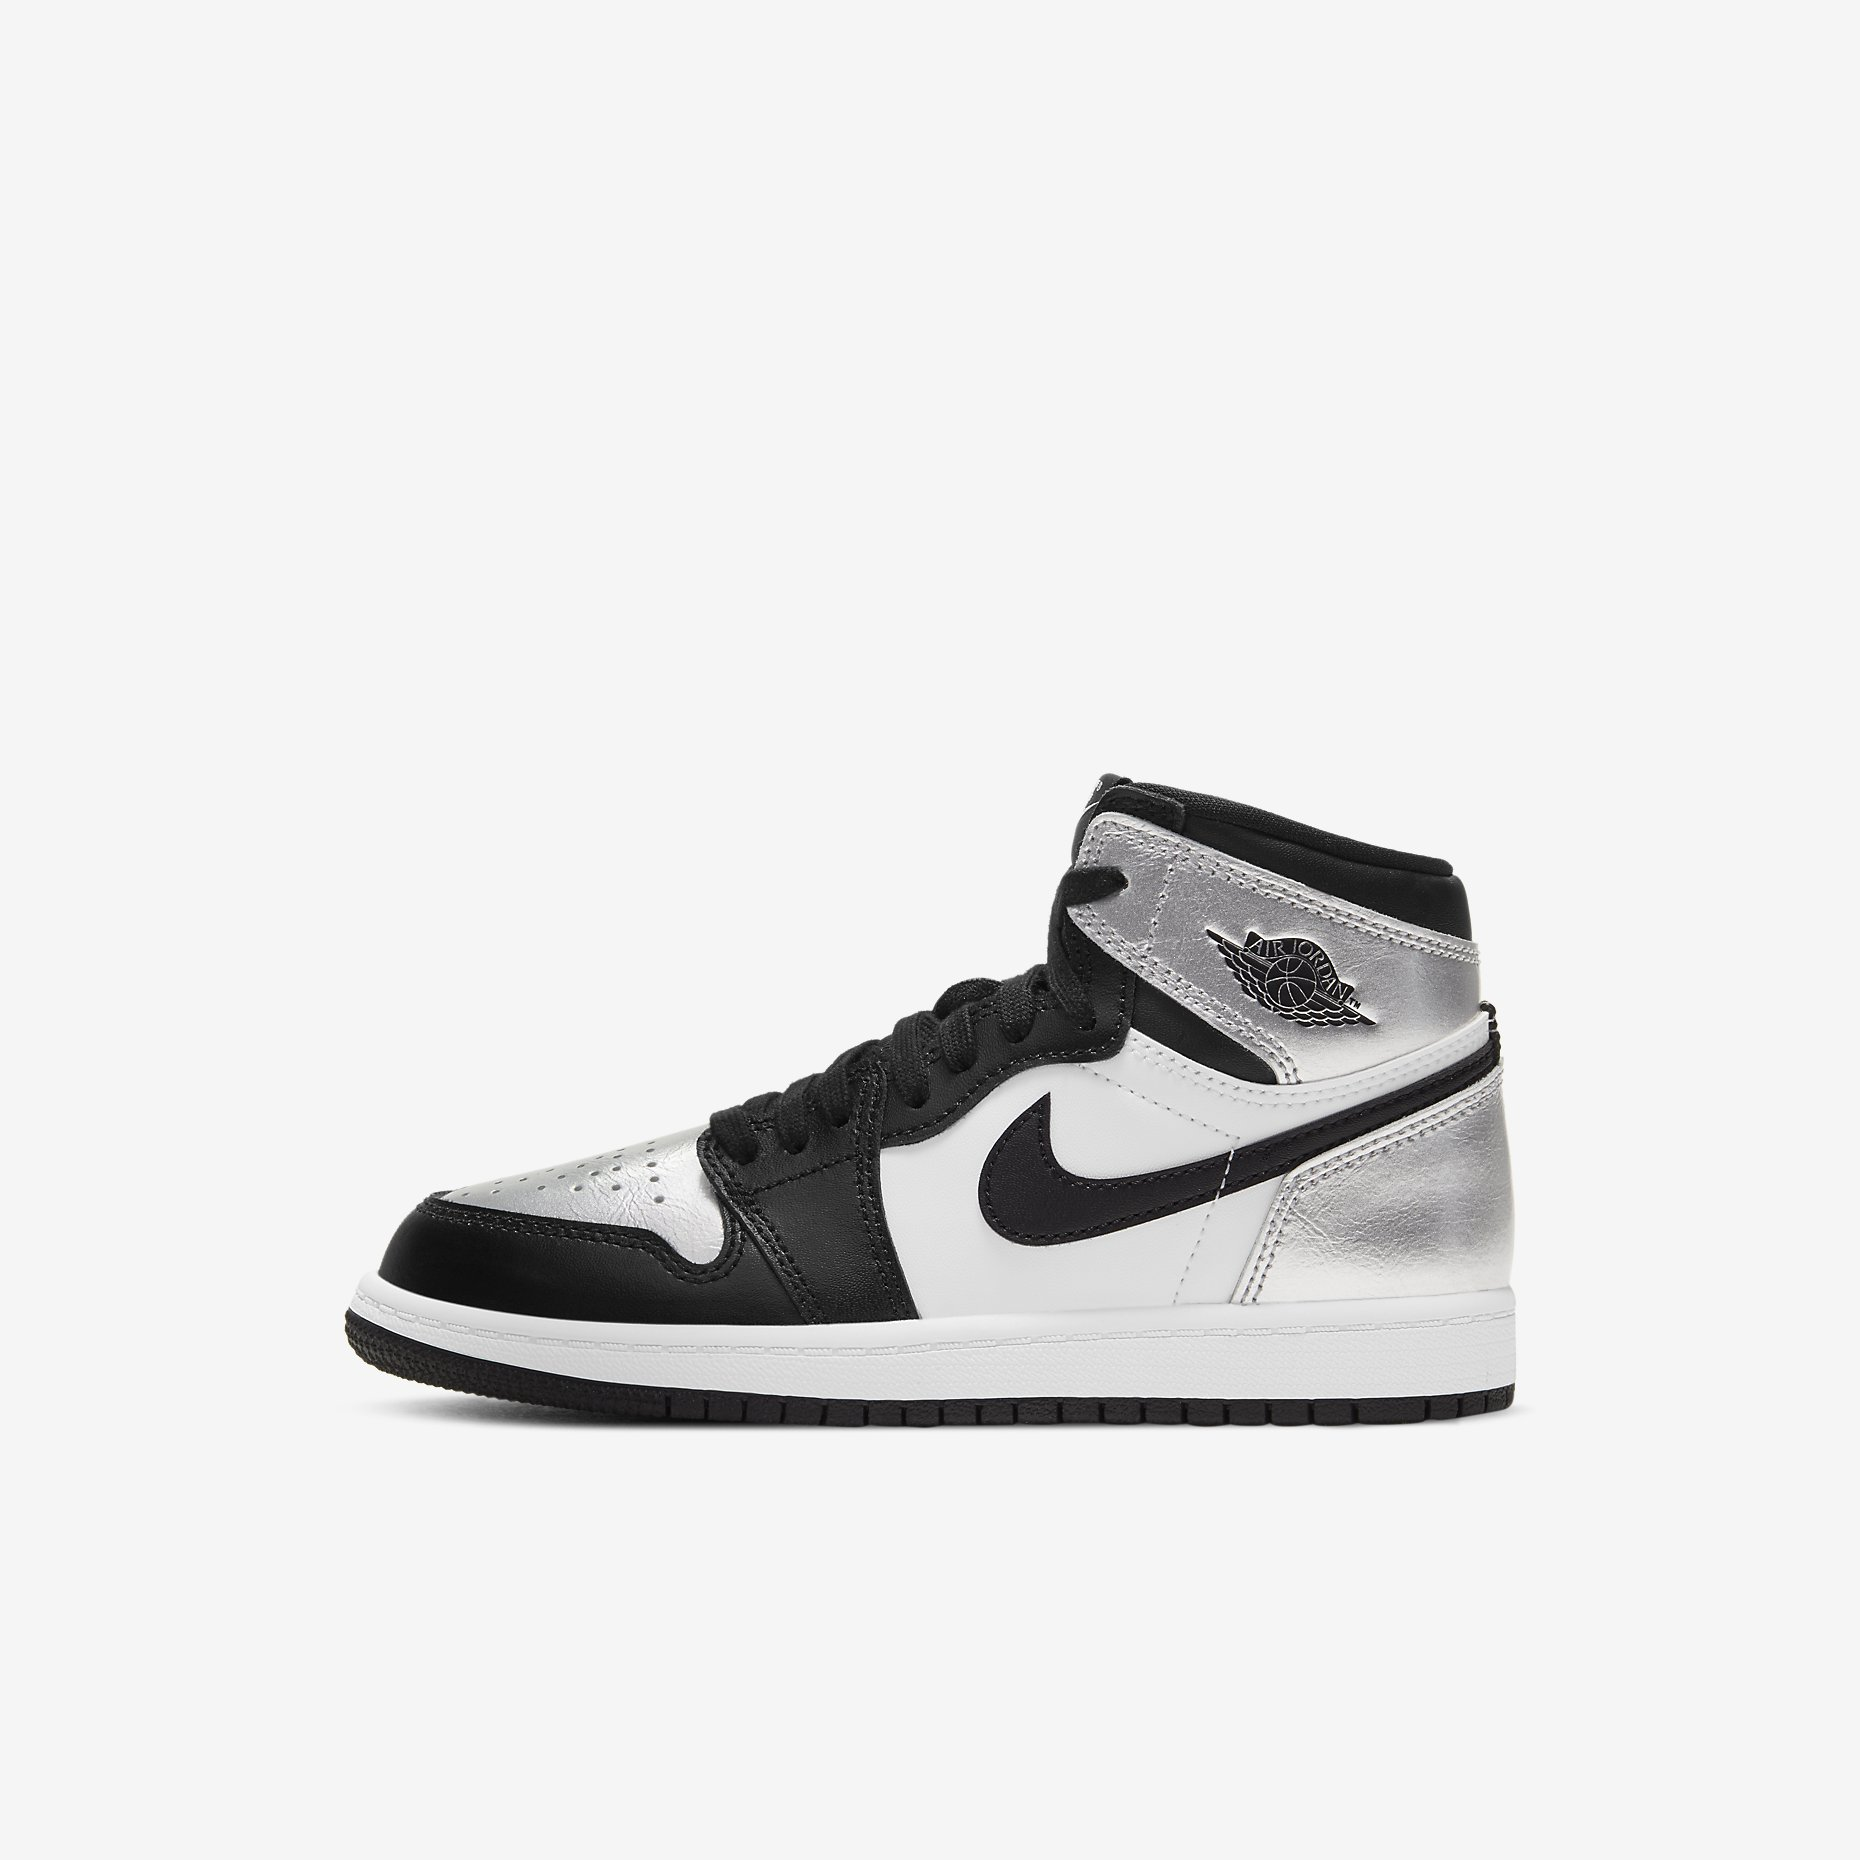 Air Jordan 1 Retro High PS 'Silver Toe'}